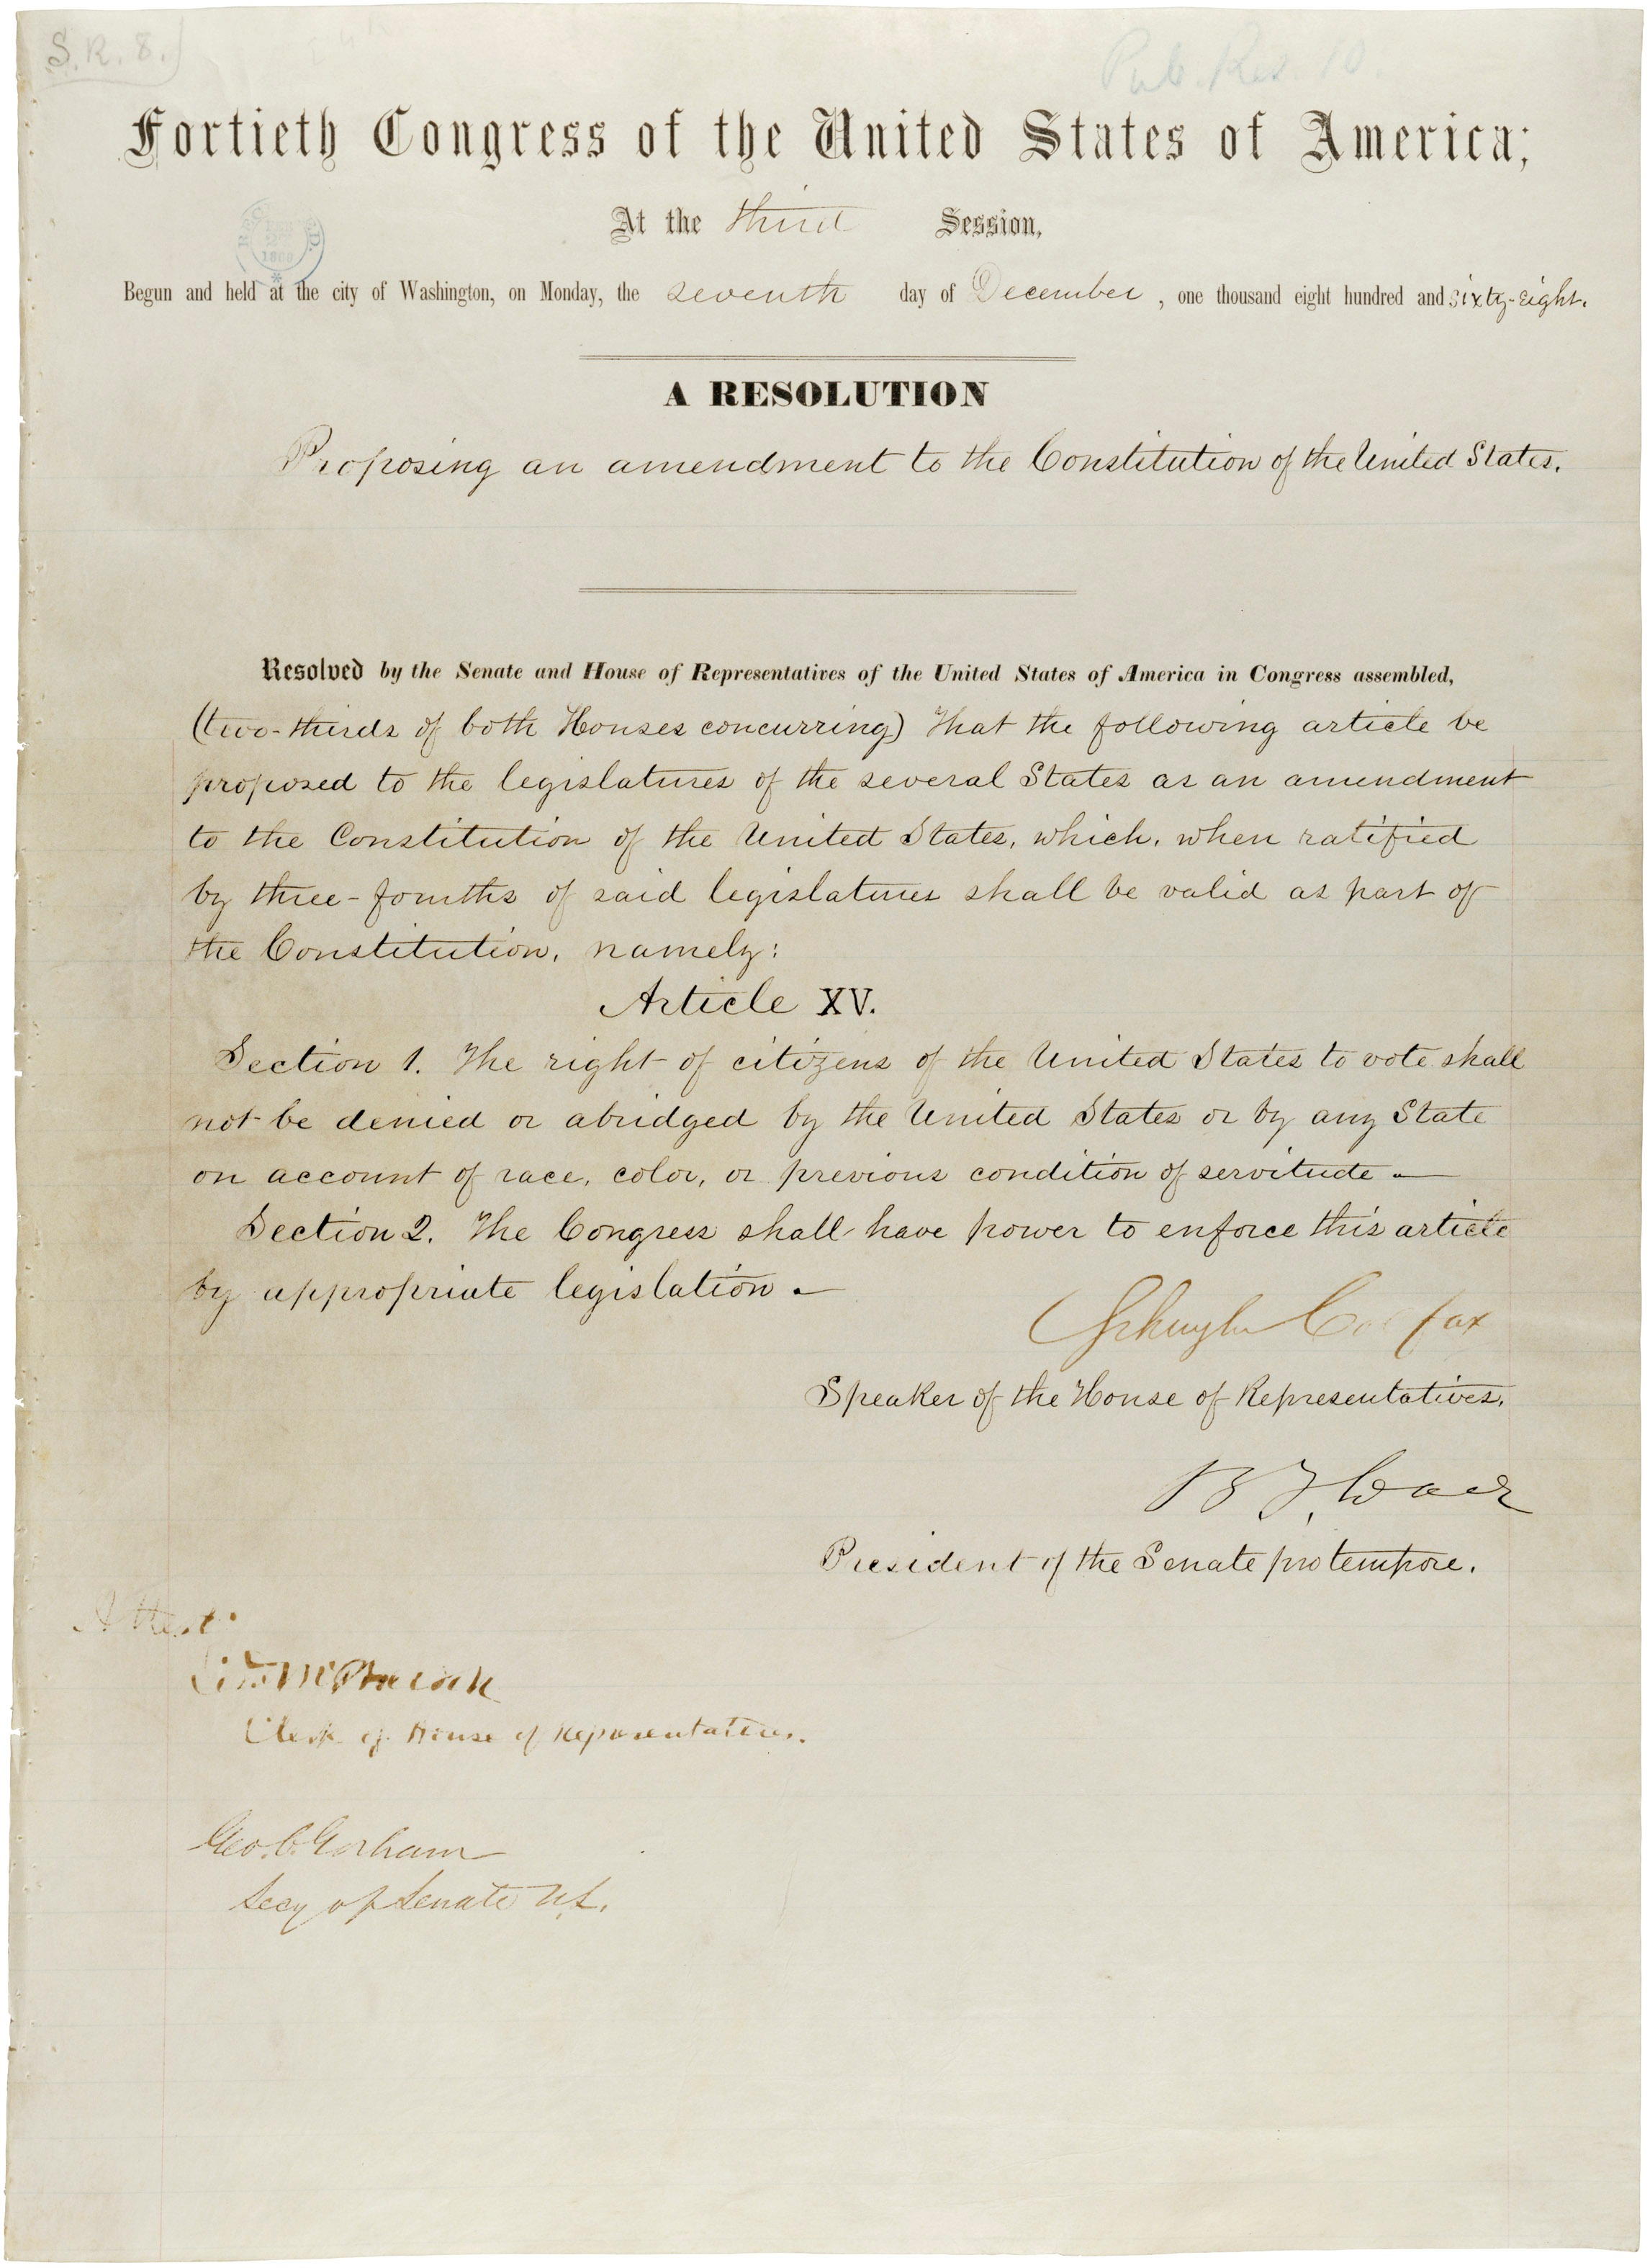 Joint resolution proposing the Fifteenth Amendment to the US Constitution